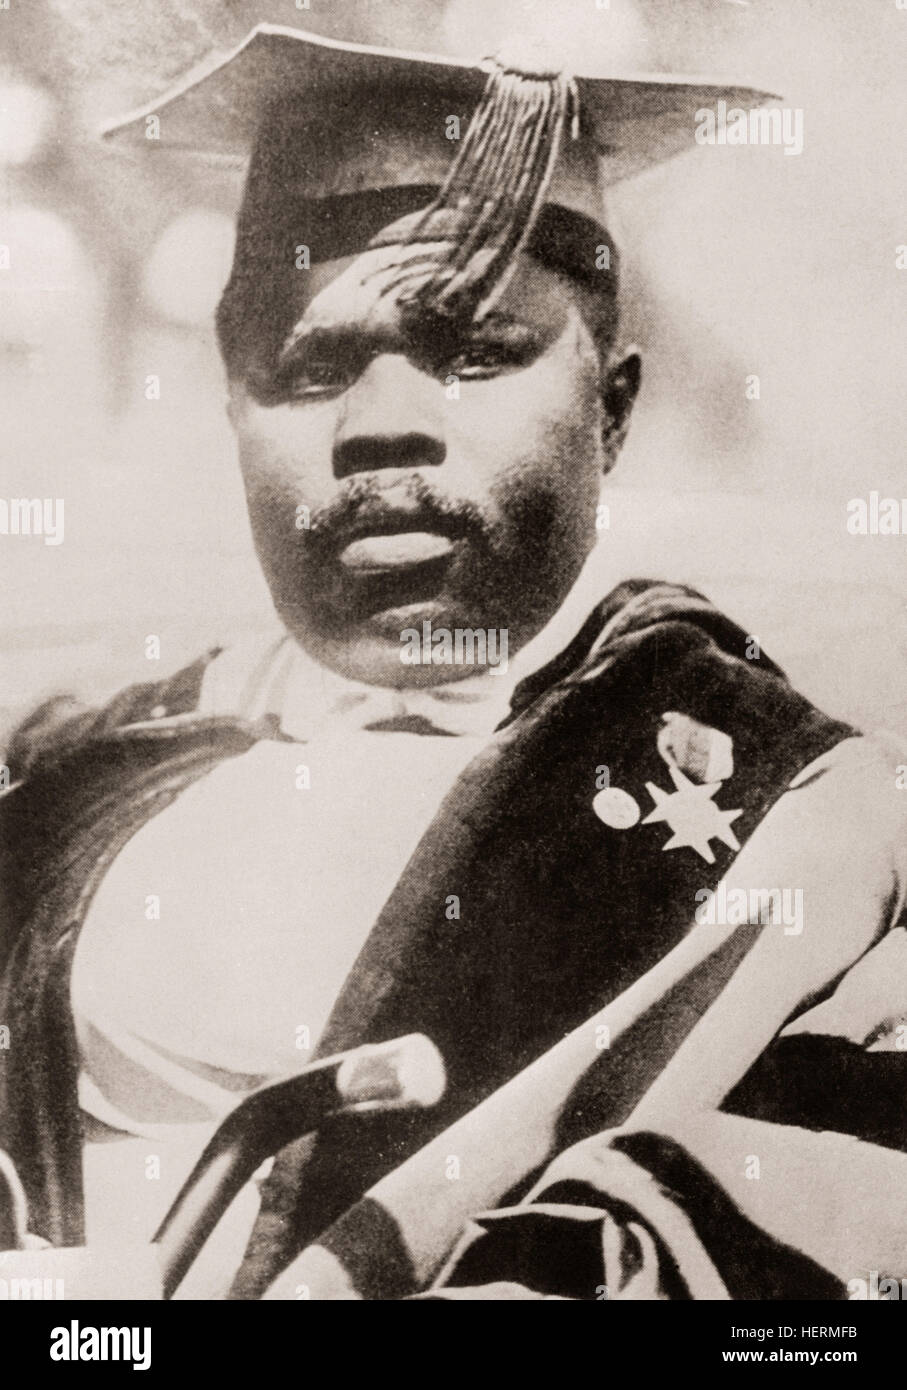 the life and contributions of marcus mosiah garvey jr the black moses Garveyism-the philosophy of marcus garvey 170 pages garveyism-the philosophy of marcus garvey uploaded by ojijo pascal download with google download with facebook or download with email garveyism-the philosophy of marcus garvey download garveyism-the philosophy of marcus garvey.